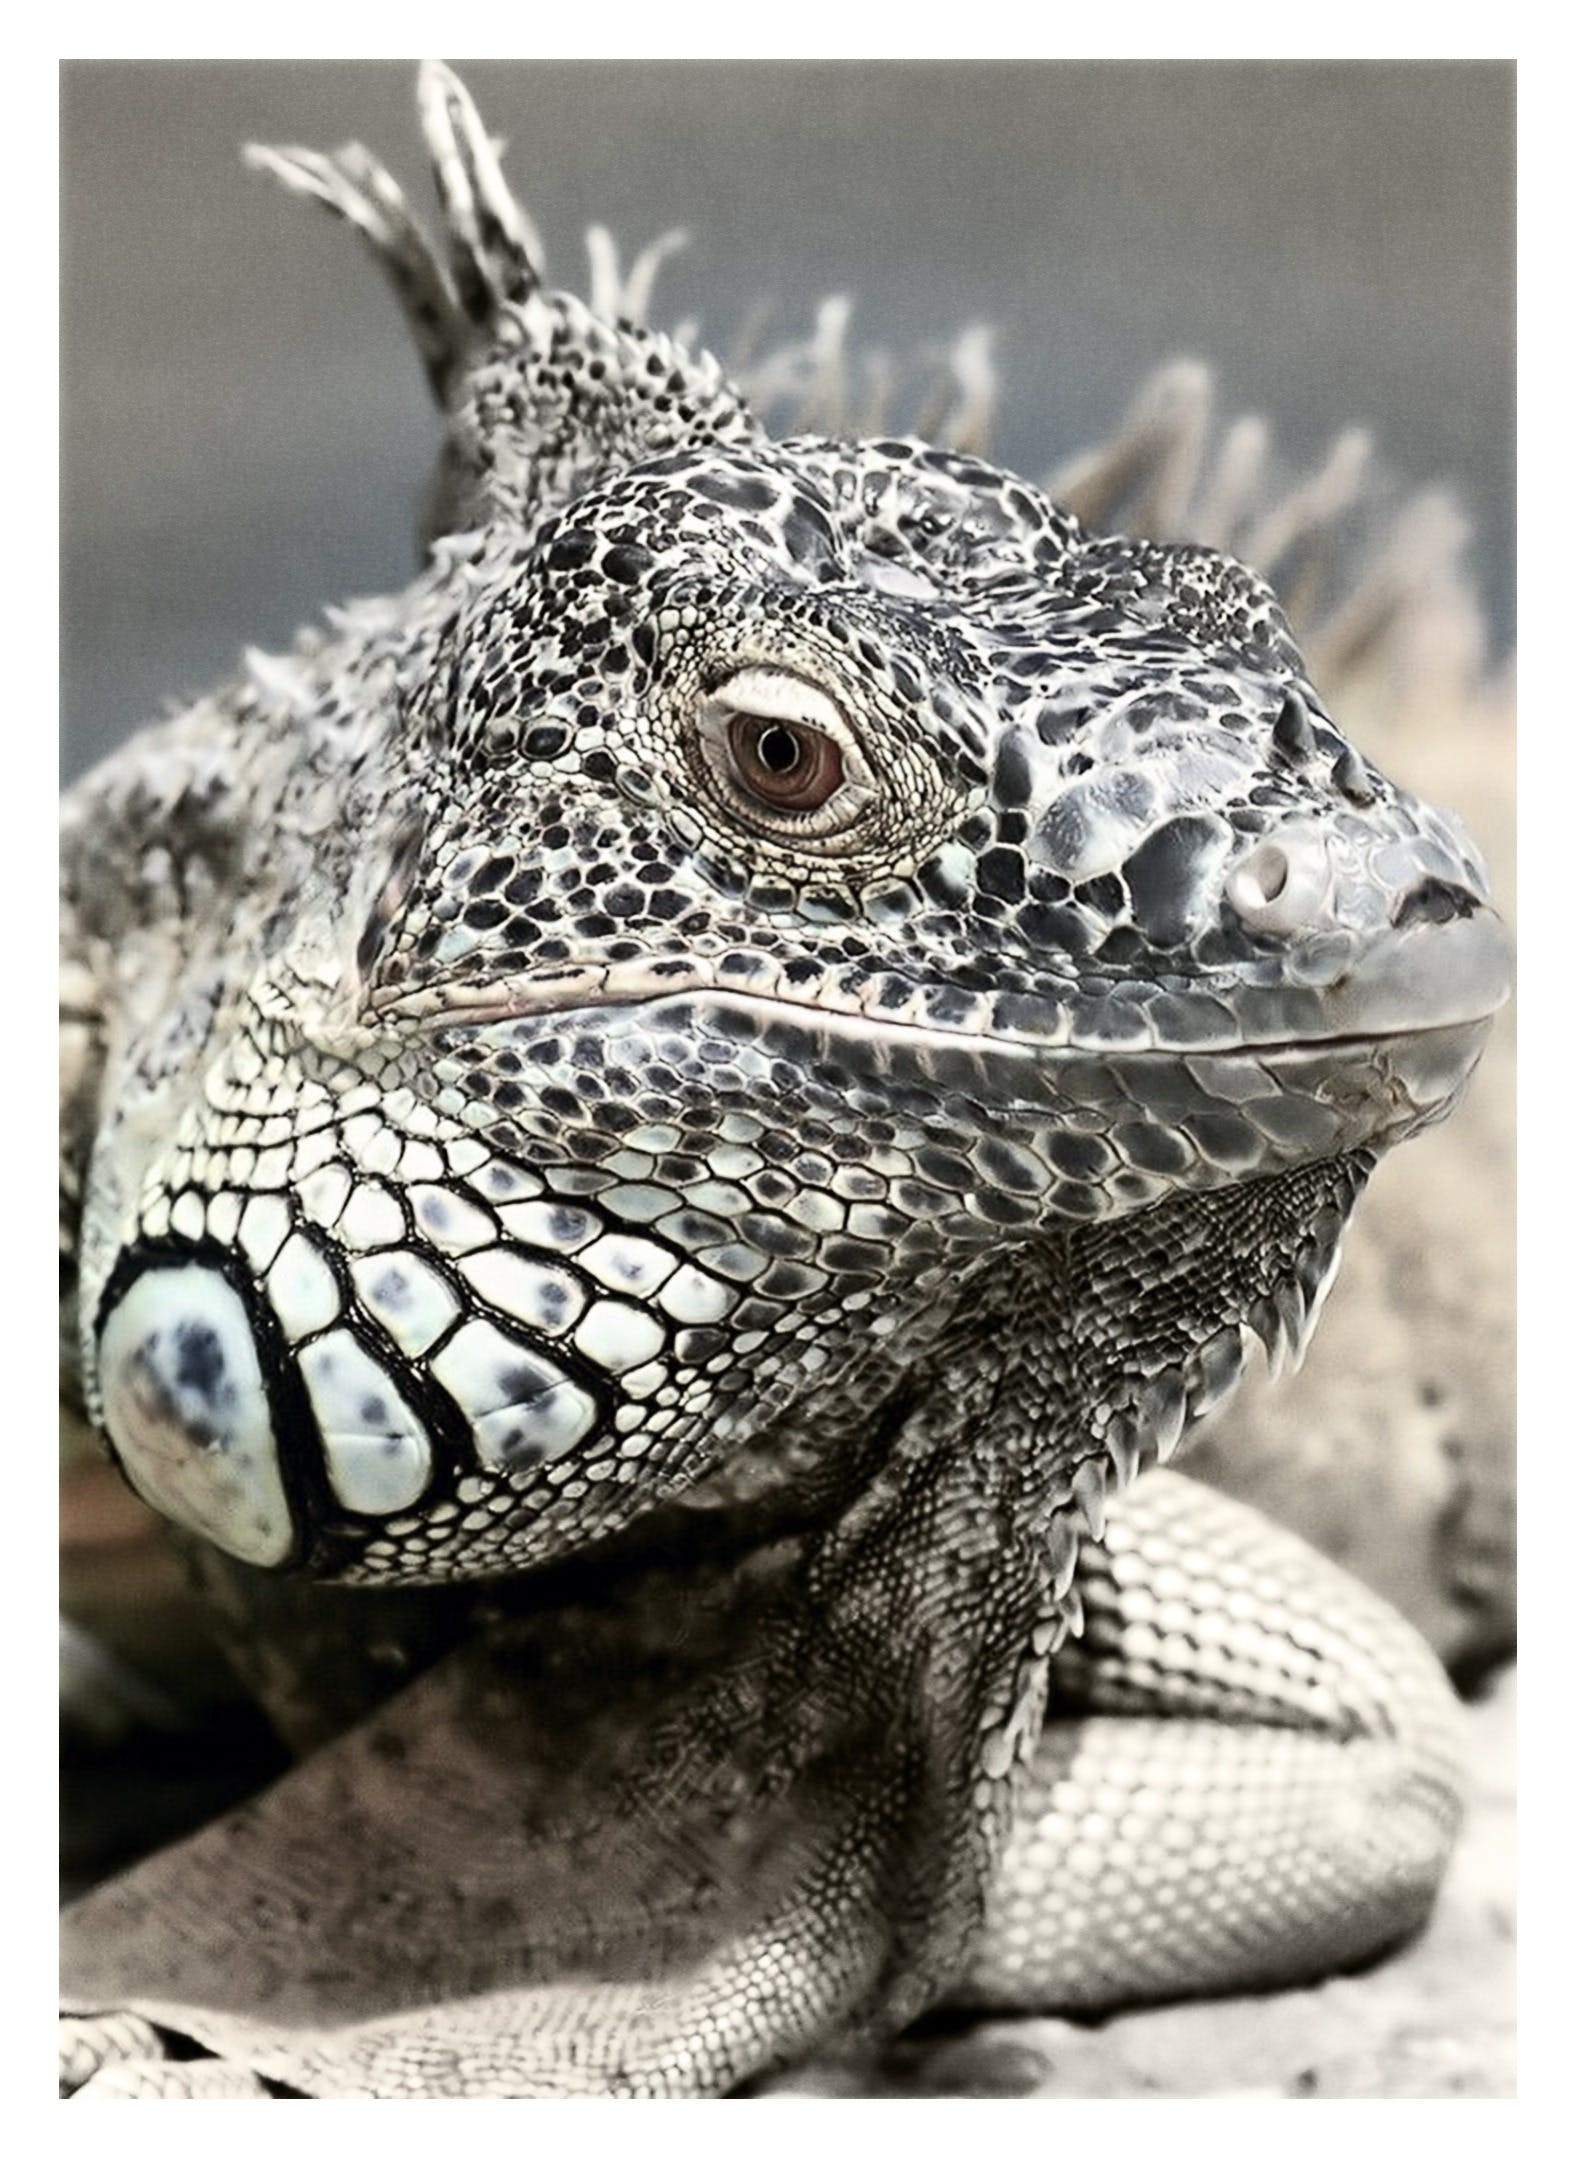 Black and White Reptile in Macro Photgraphy